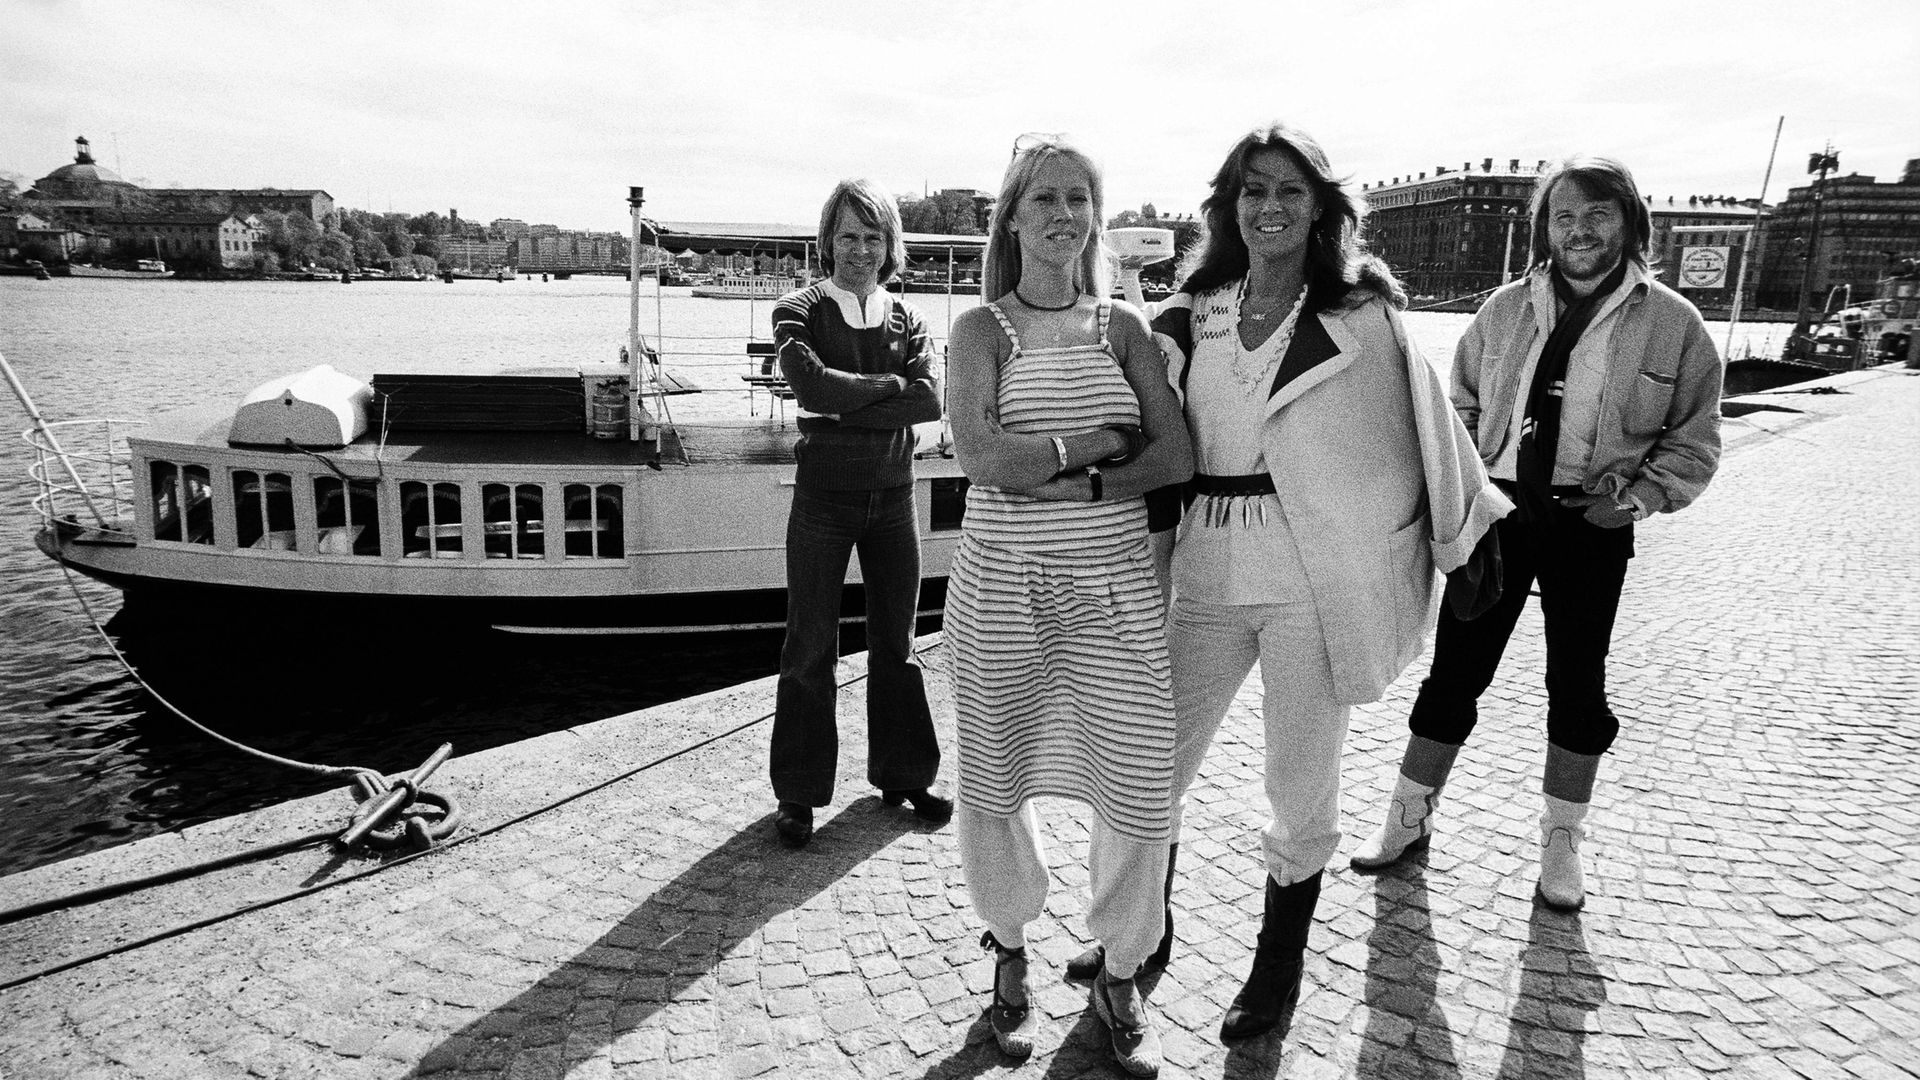 ABBA pose dockside in Stockholm's Gamla Stan (Old Town) in July 1977. Pictured from left: Bjorn Ulvaeus, Agnetha Faltskog, Anni-Frid Lyngstad, and Benny Andersson - Credit: Getty Images